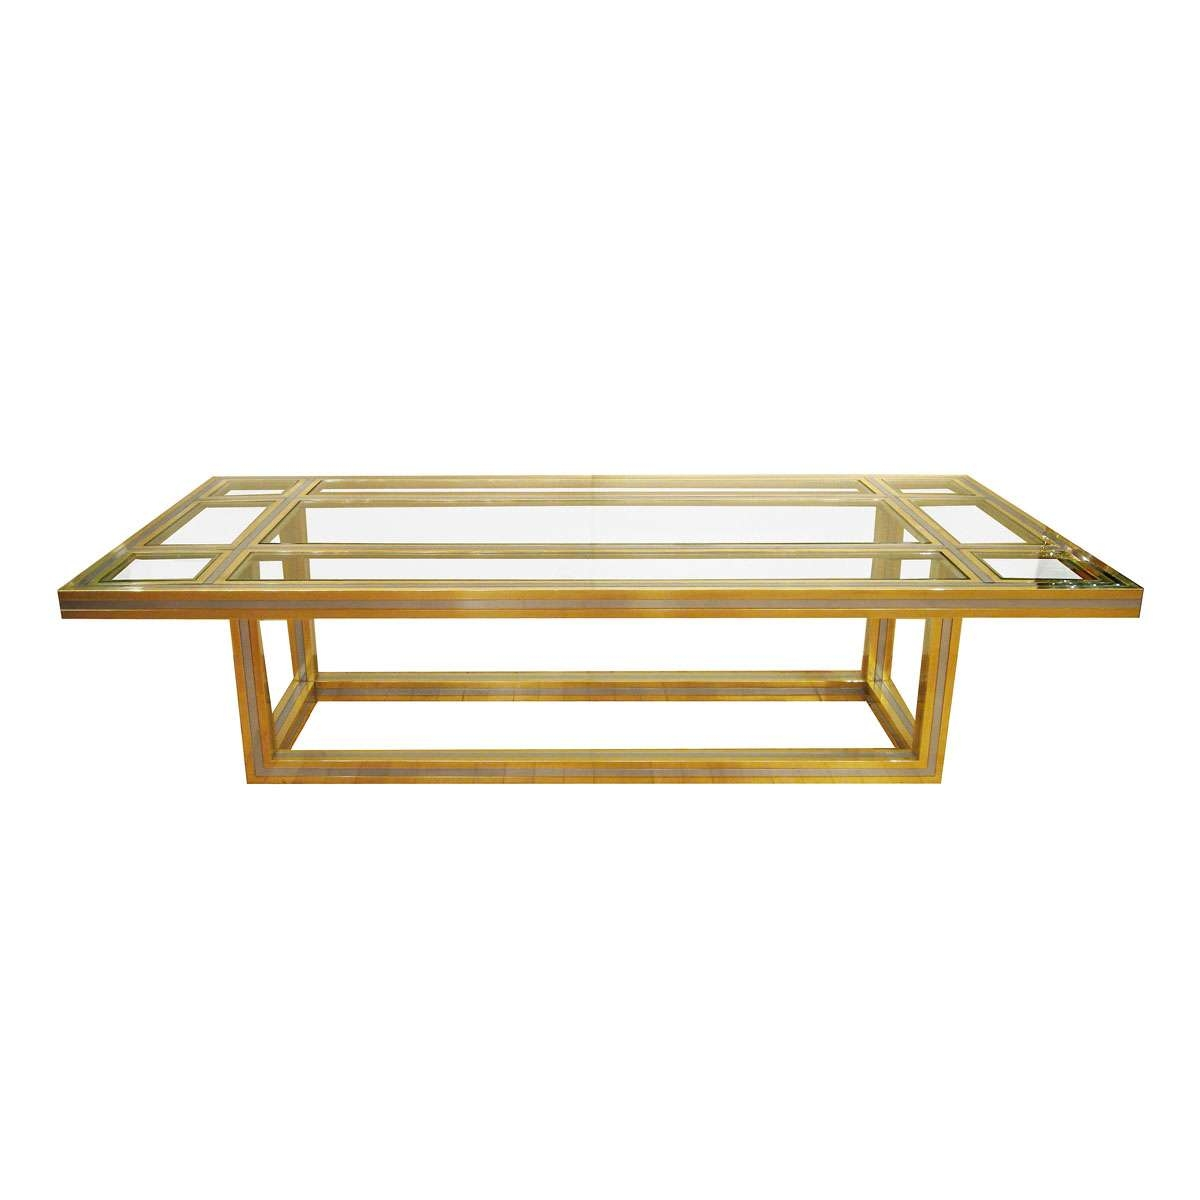 Recent Antique Brass Glass Coffee Tables Inside Brass And Stainless Steel Coffee Table With Glass Insets (View 17 of 20)